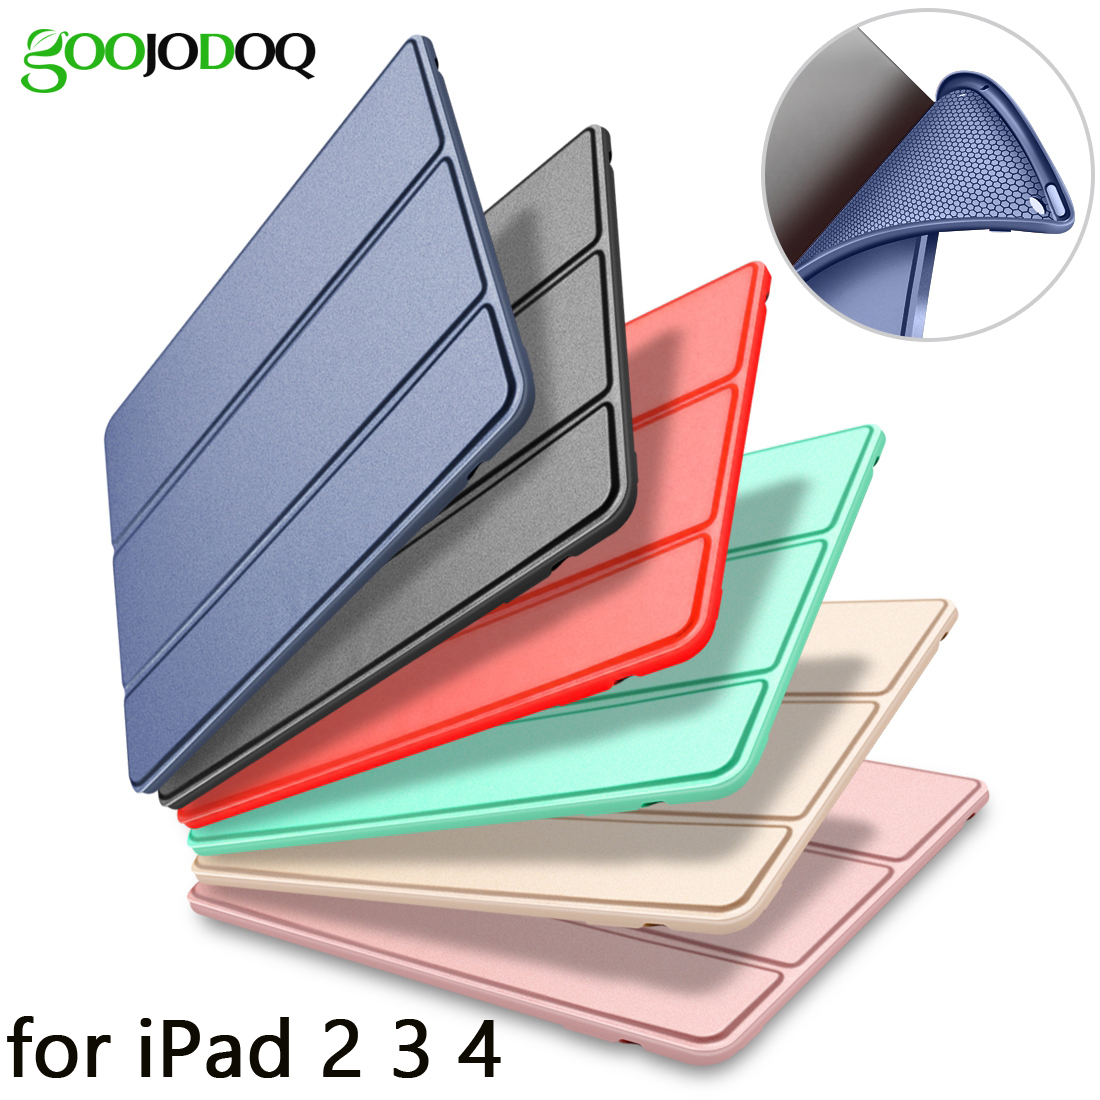 GOOJODOQ Case for iPad 2 3 4 Silicone Soft Back Folio Stand for iPad 2 Case